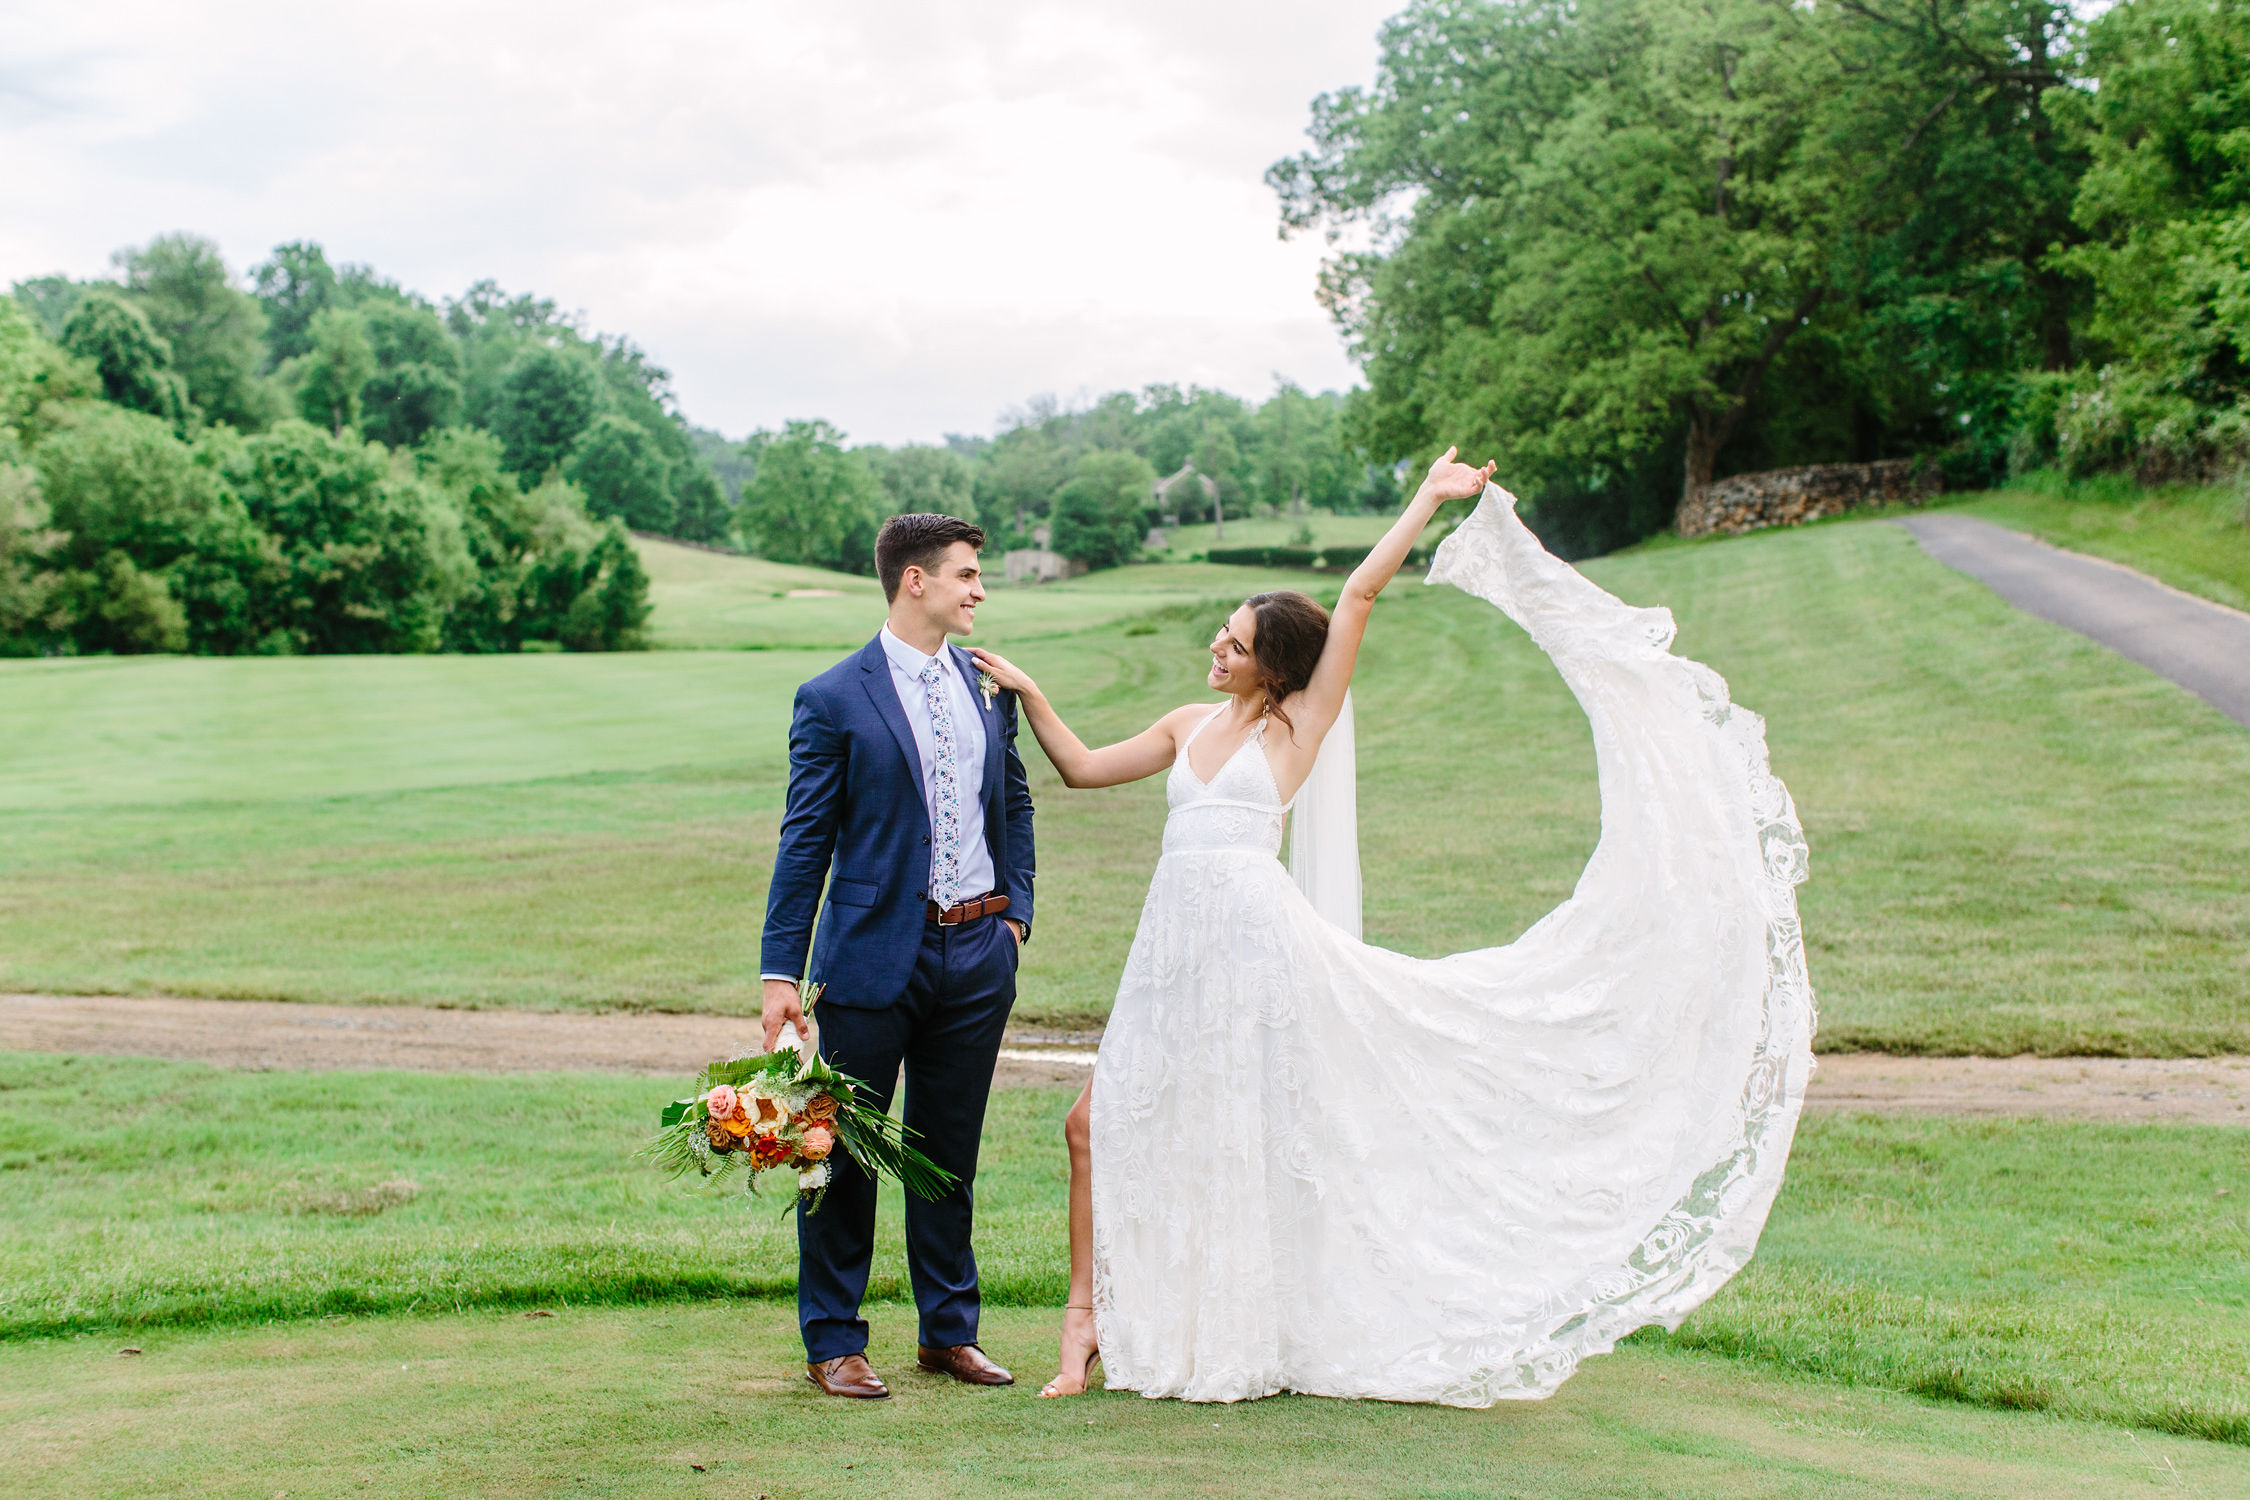 round hill Virginia golf course wedding fun bright airy poses, outdoors, modern, vibrant, bohemian, country, golf course, sunset, fun, creative, romantic, details, spring, summer, editorial, natural, light and airy, natural light, ideas, passionate, inspiration, beautiful, lighting, dress, love, evening, vibrant, colorful